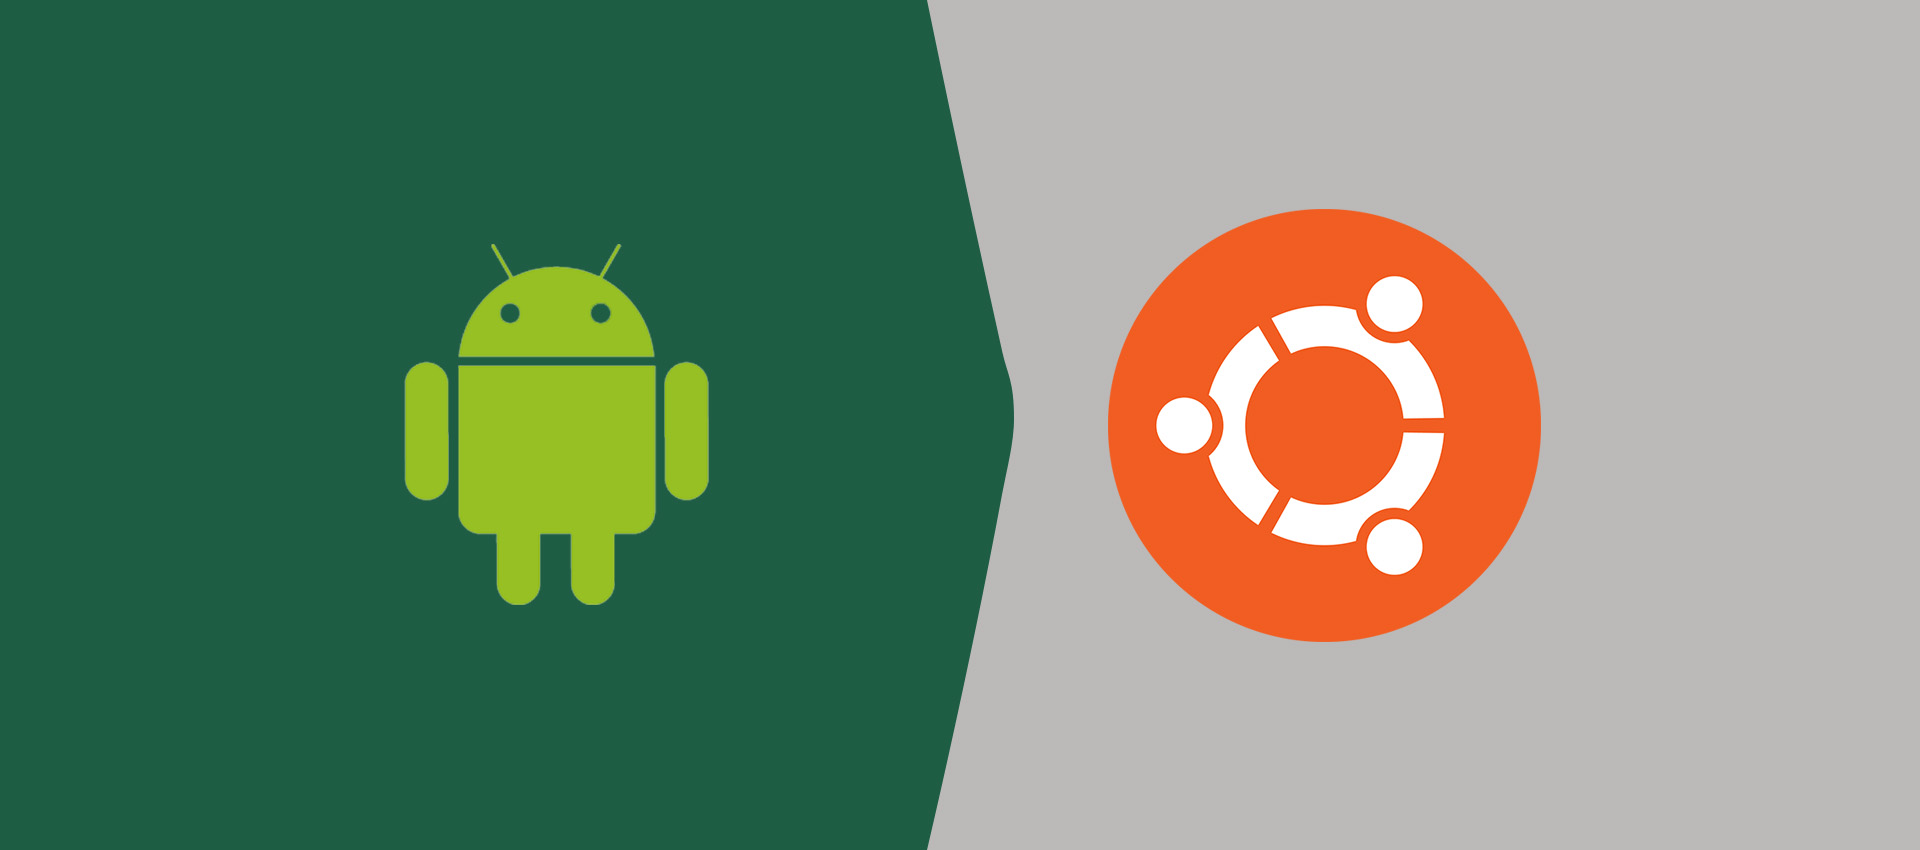 How To Install Android SDK Tools On Ubuntu 18.04